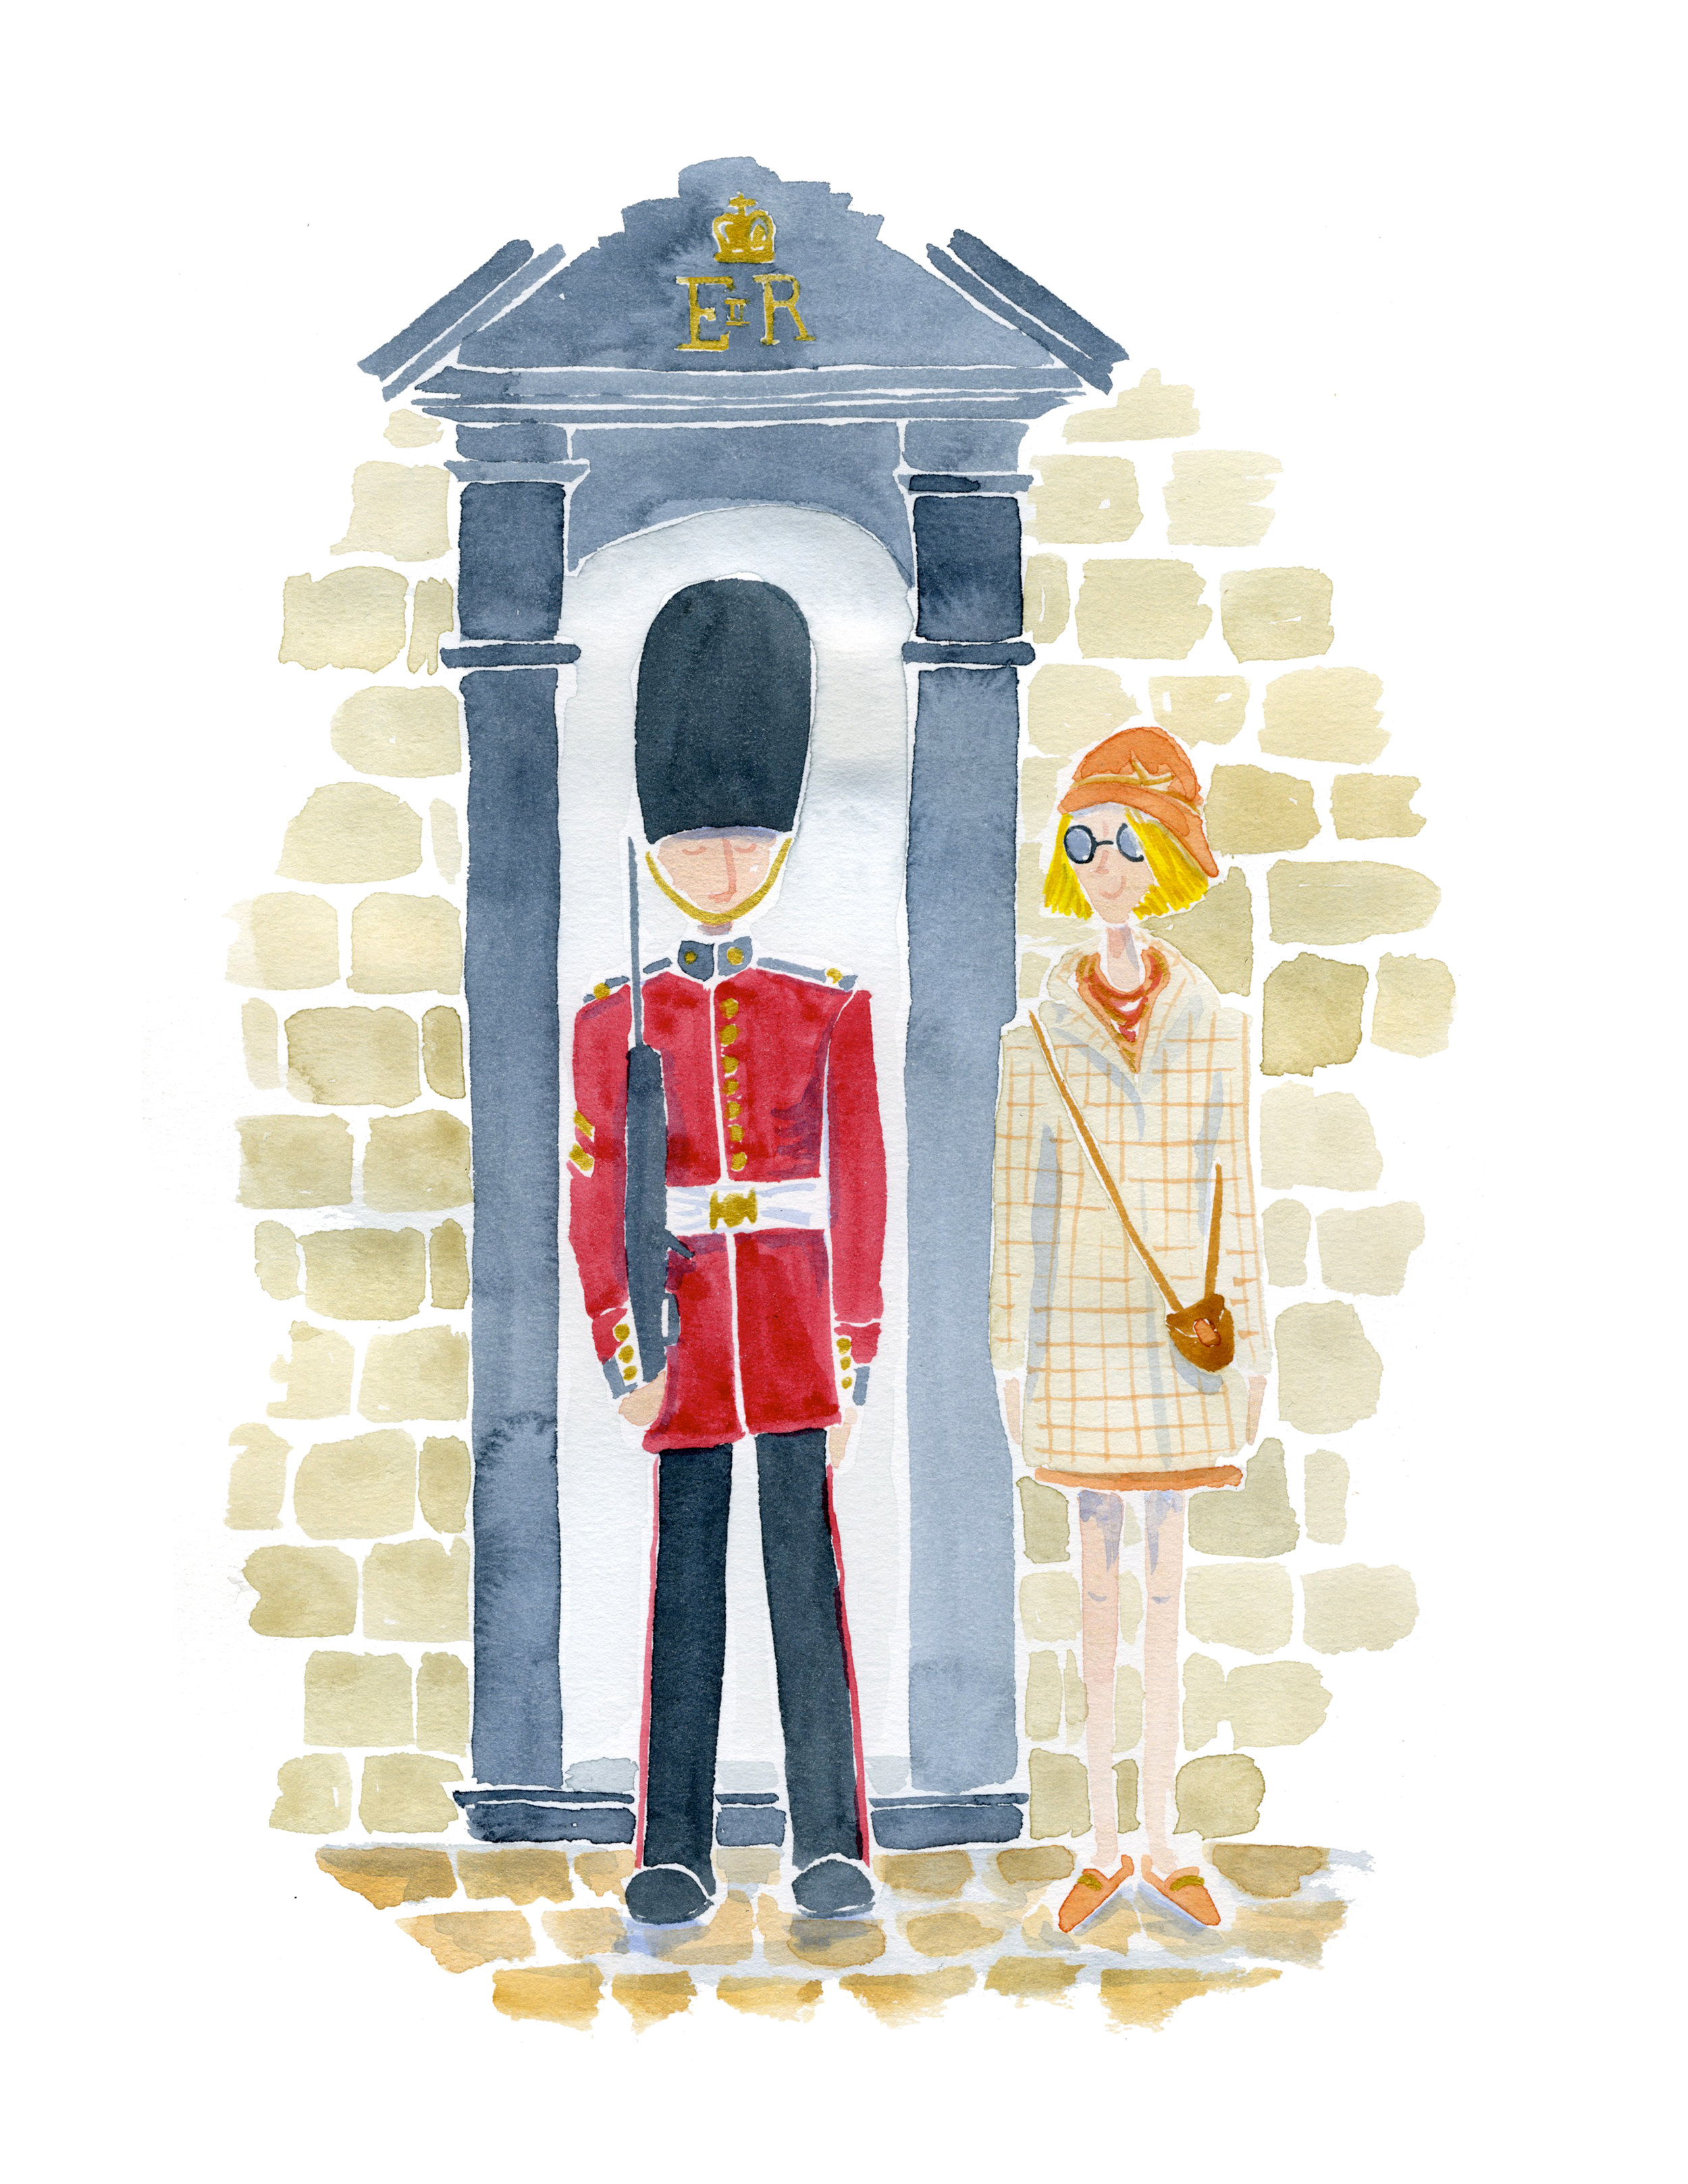 The Frances Flair Illustrations - London.jpg